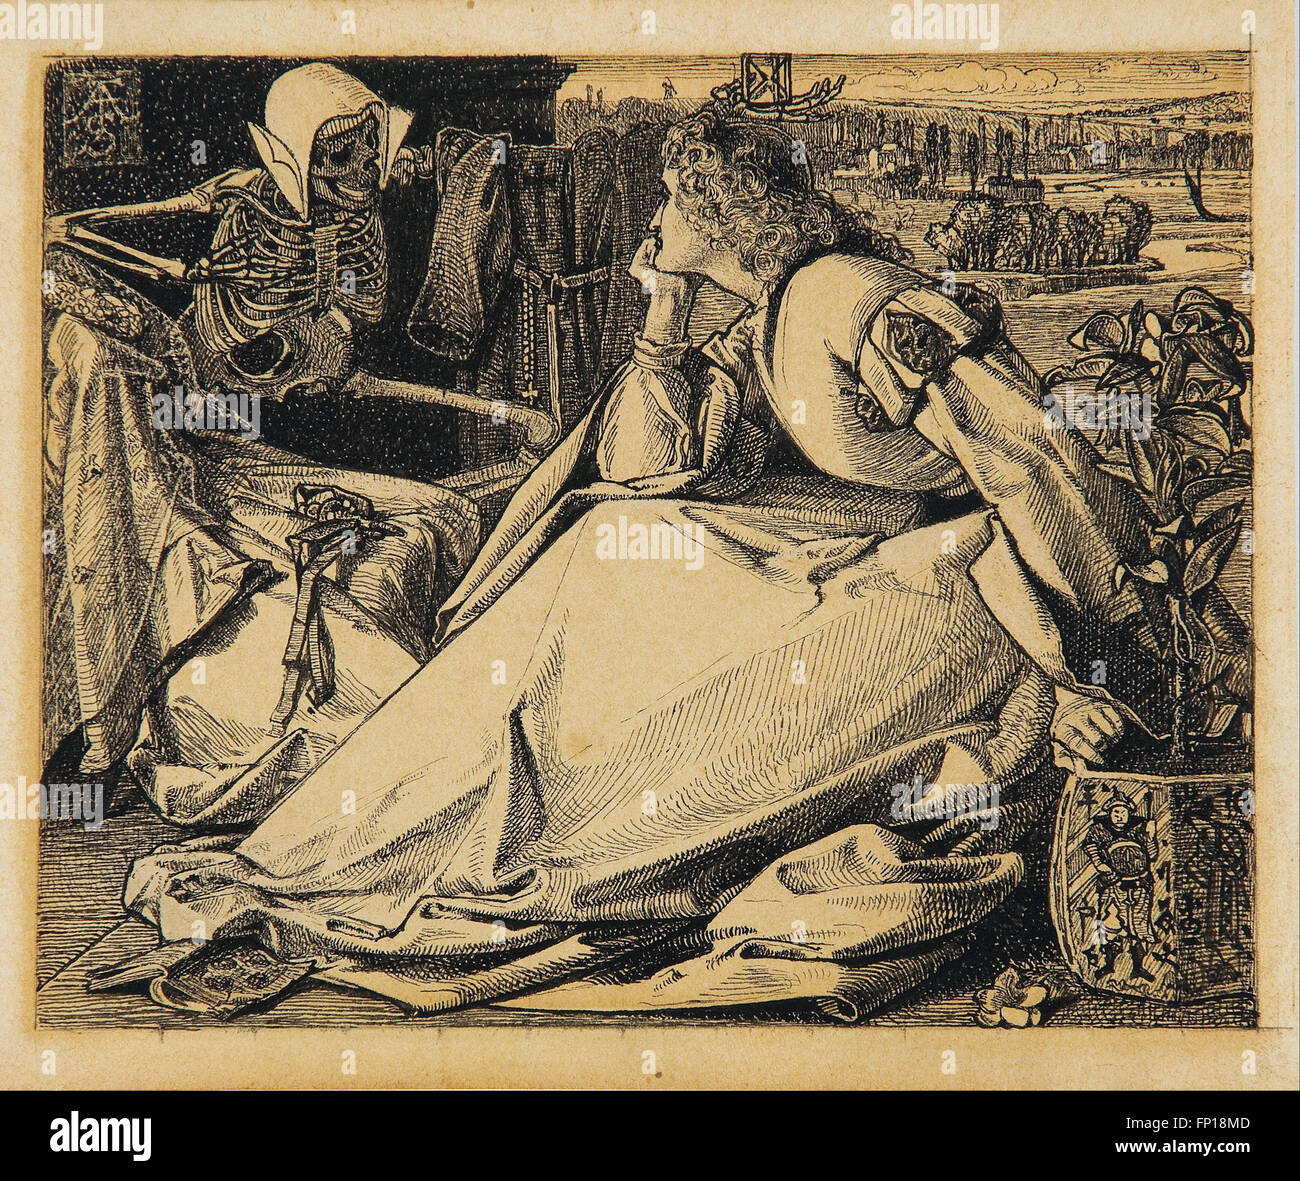 Frederick A. Sandys - Until her death - preparatory drawing for 'Good Words' - Stock Image